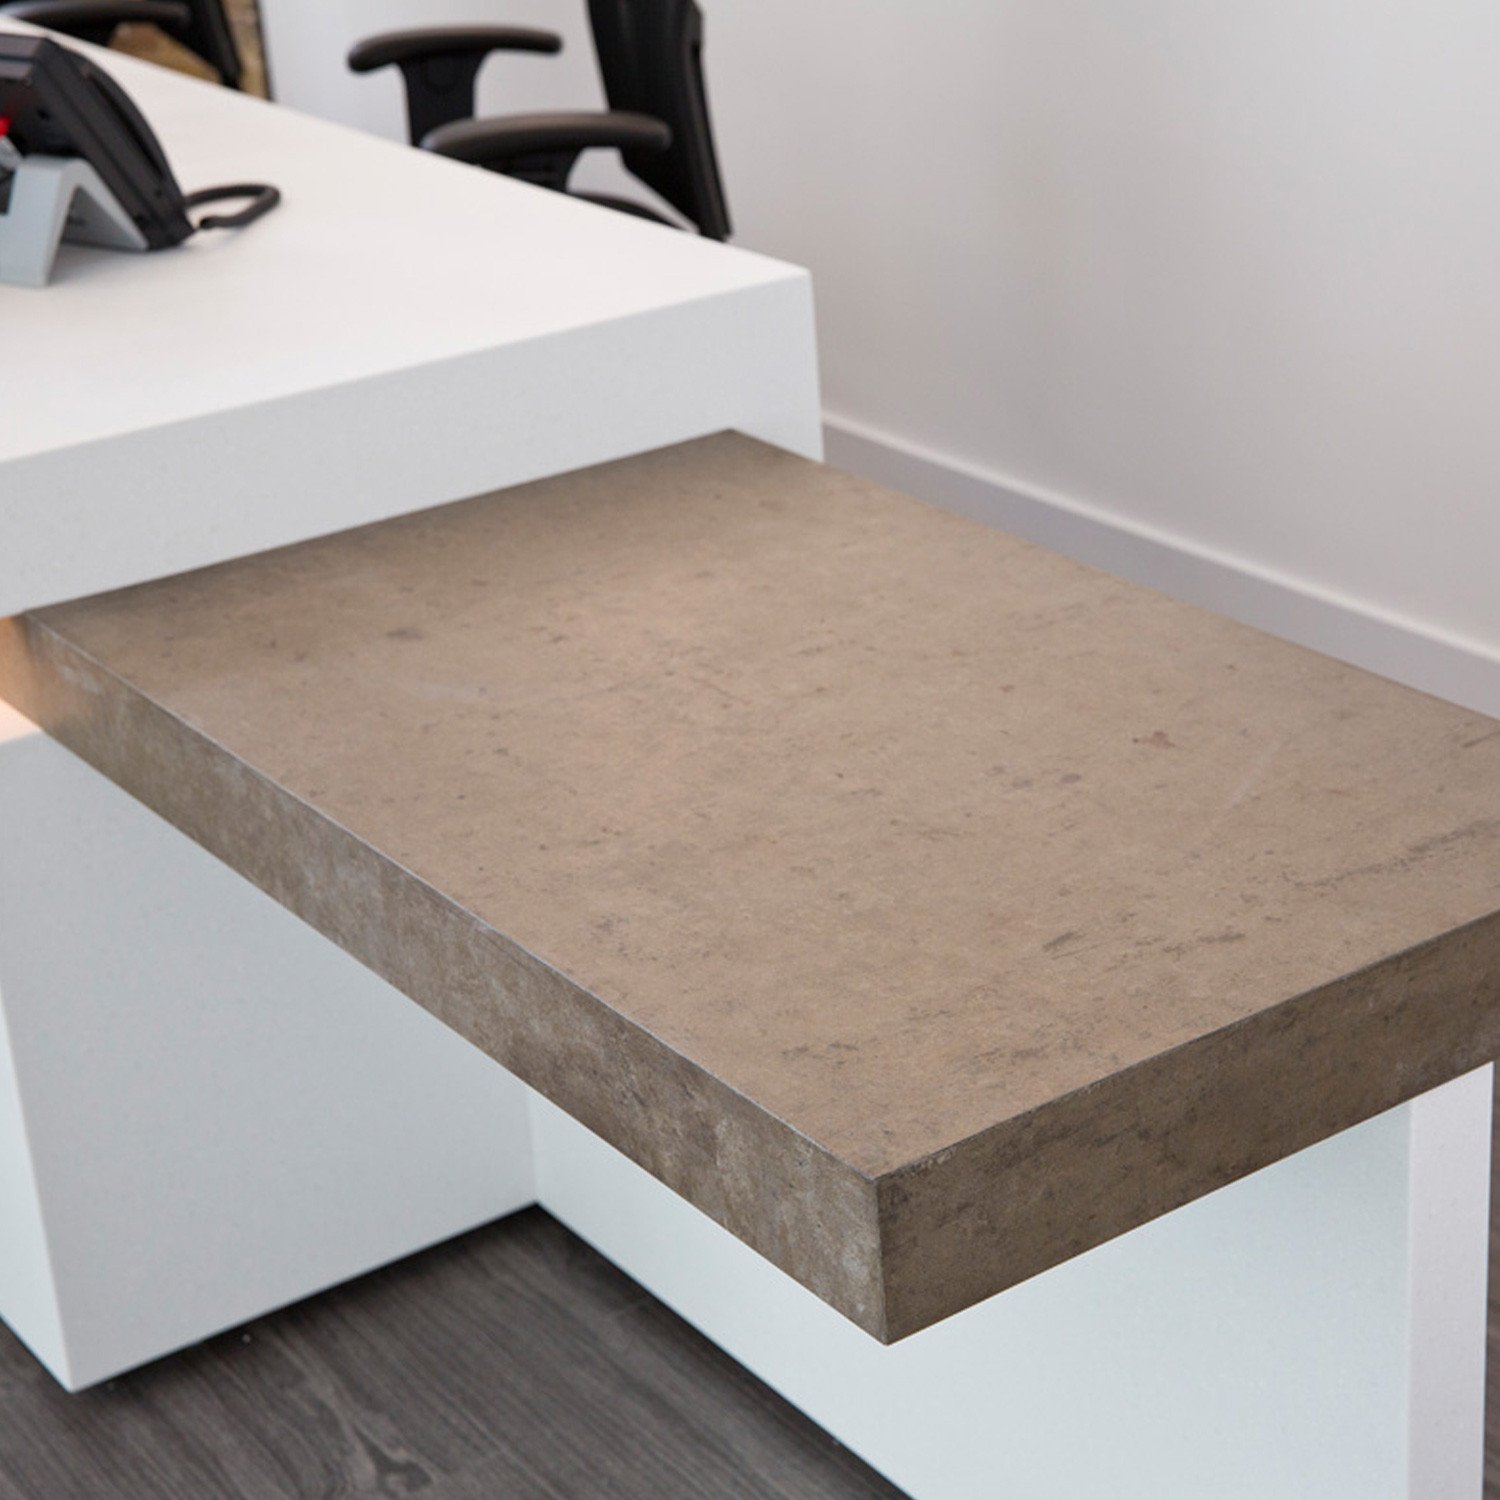 Corian Reception Desk With Eco-friendly Concrete